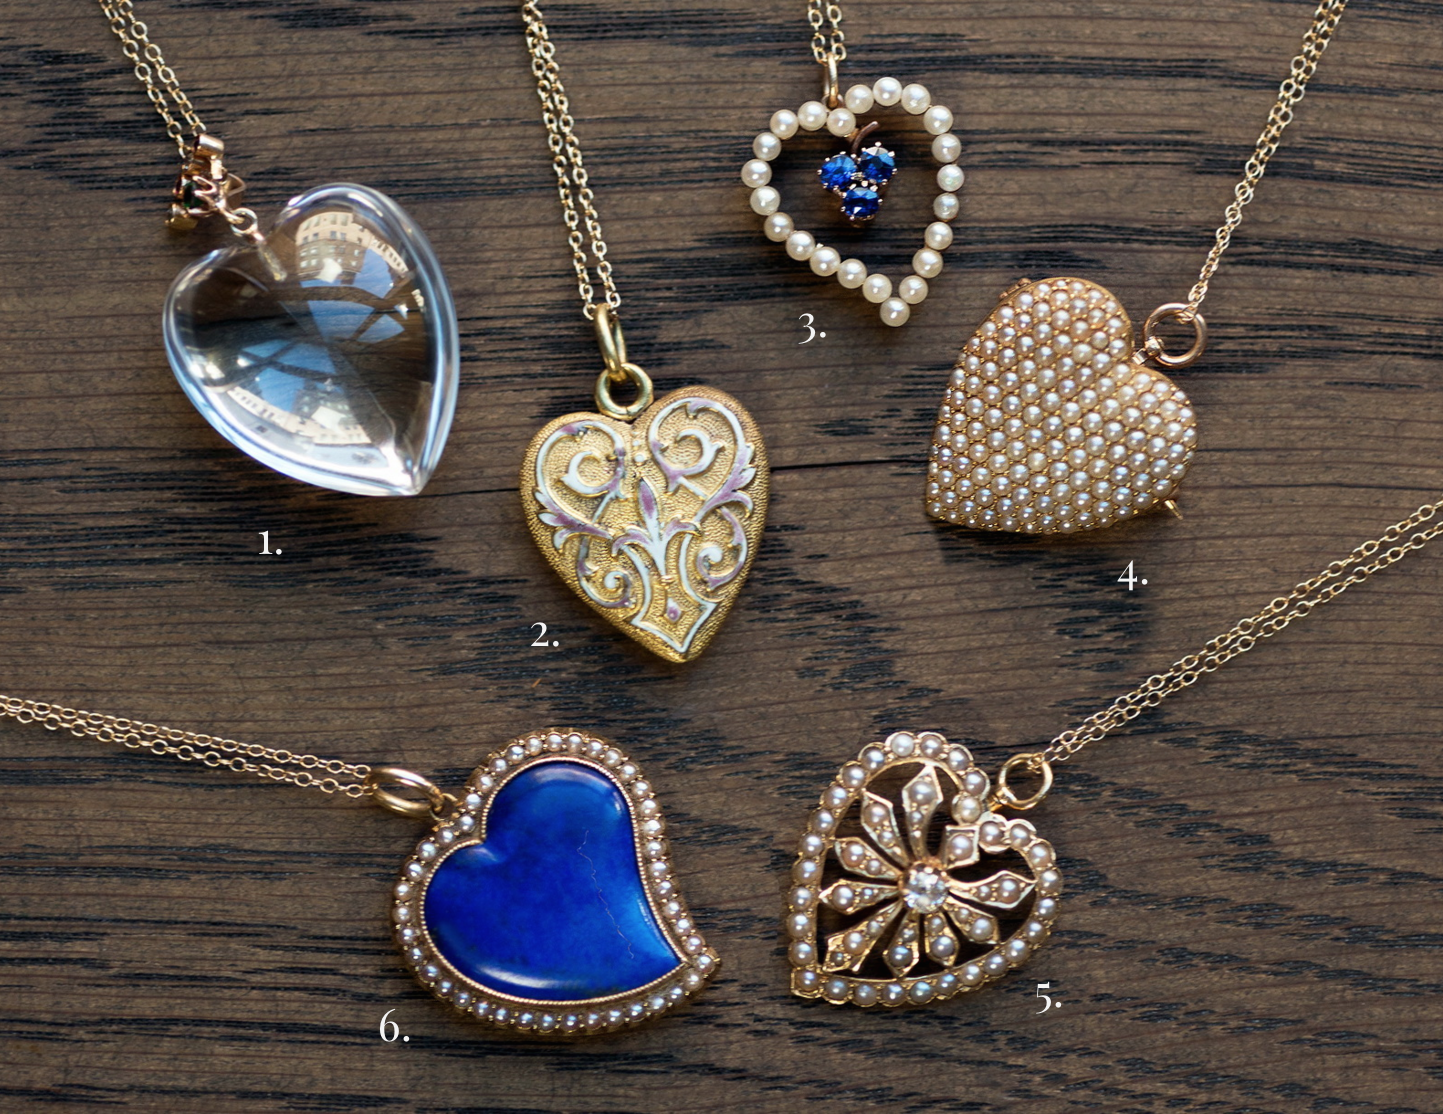 Vintage and antique heart pendants from Doyle & Doyle.